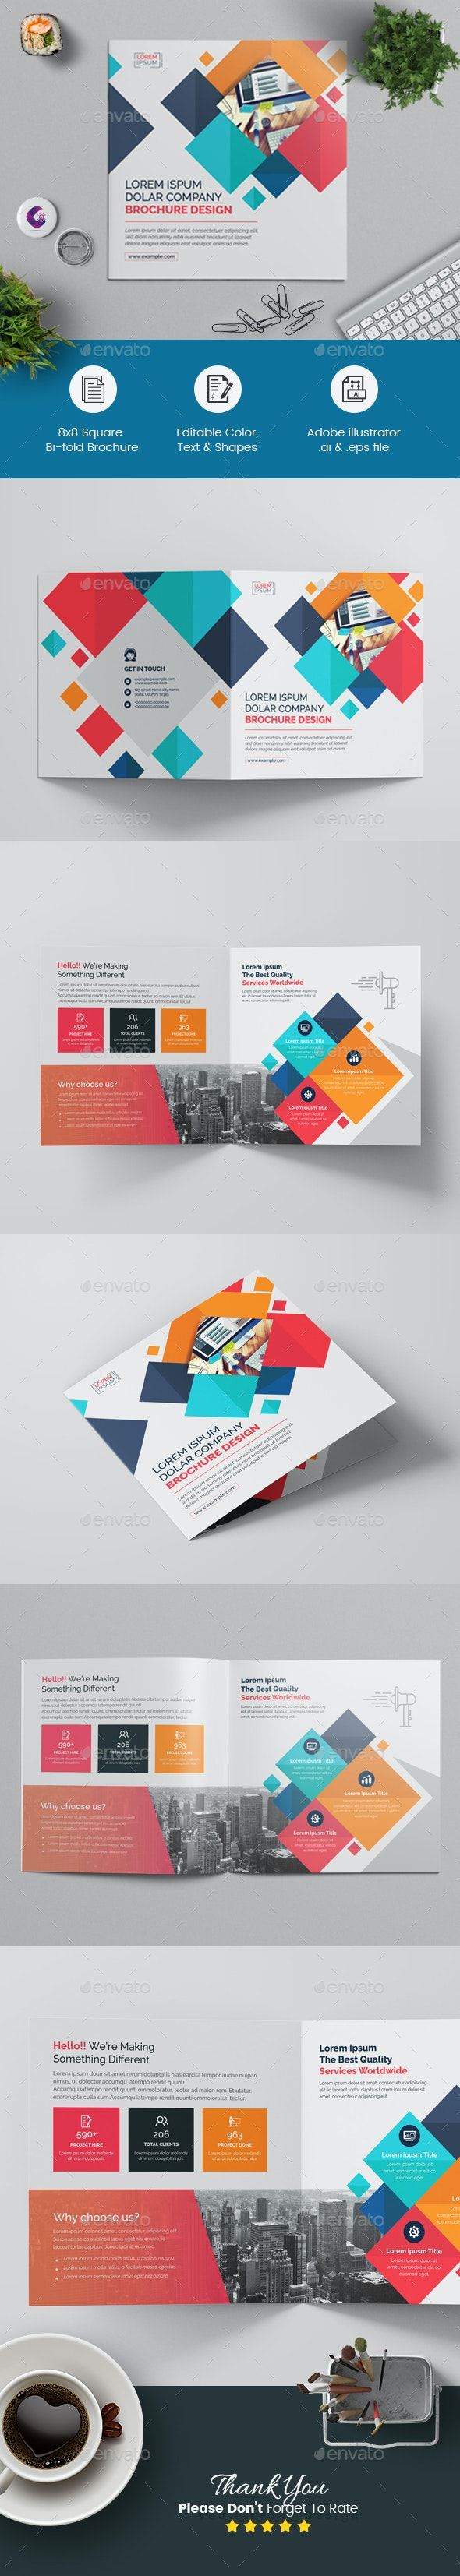 Square Bi-fold Brochure - Corporate Brochures